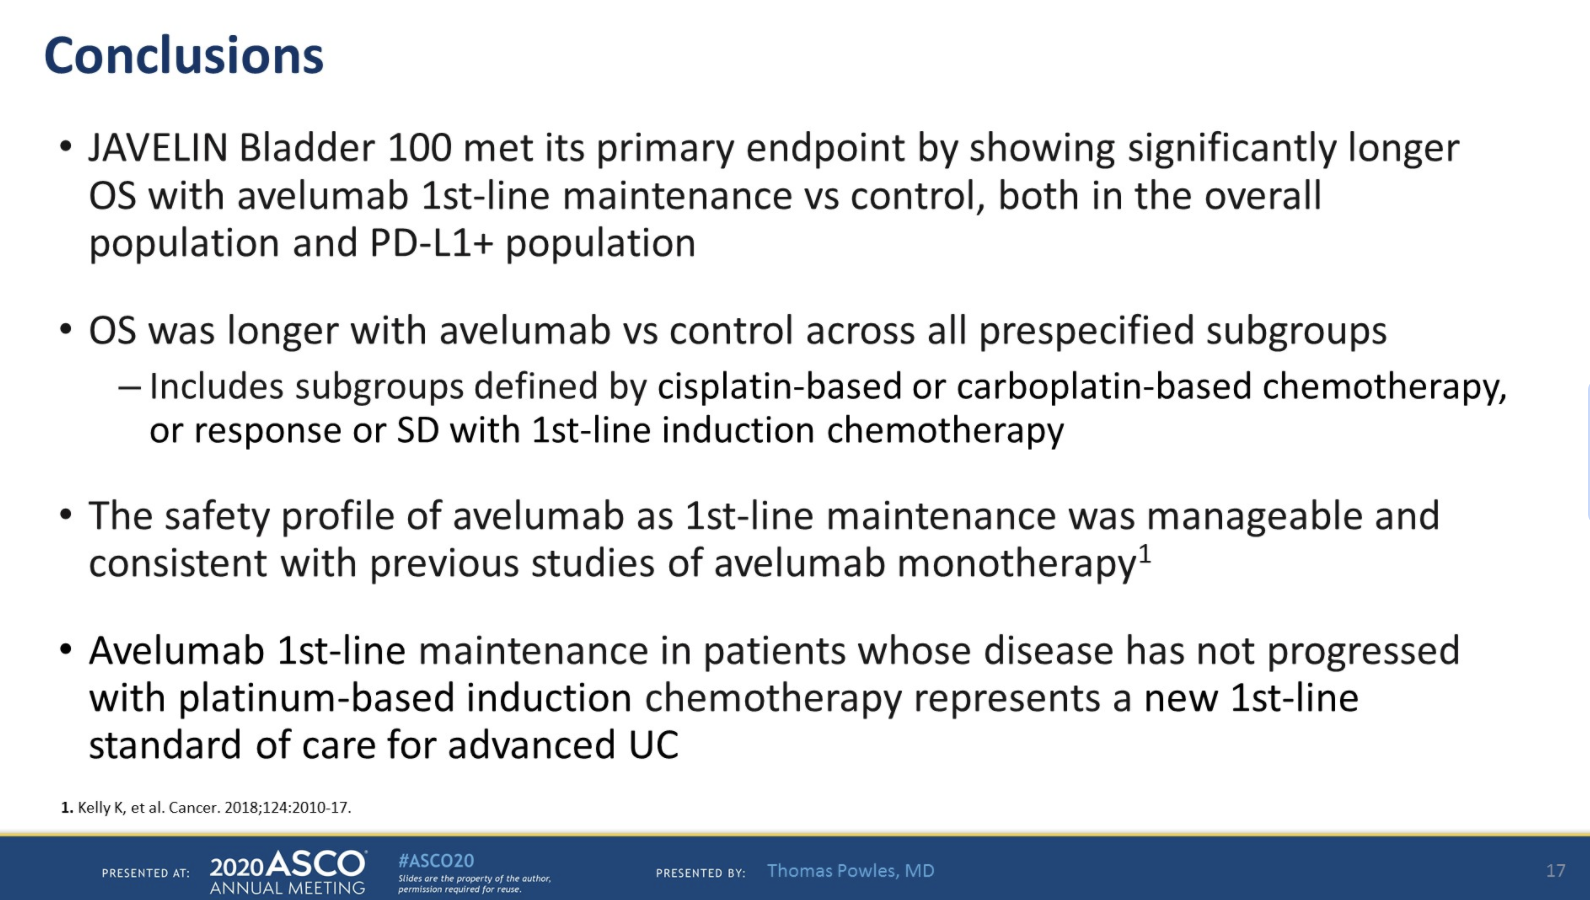 ASCO2020_JAVELIN_conclusions.png